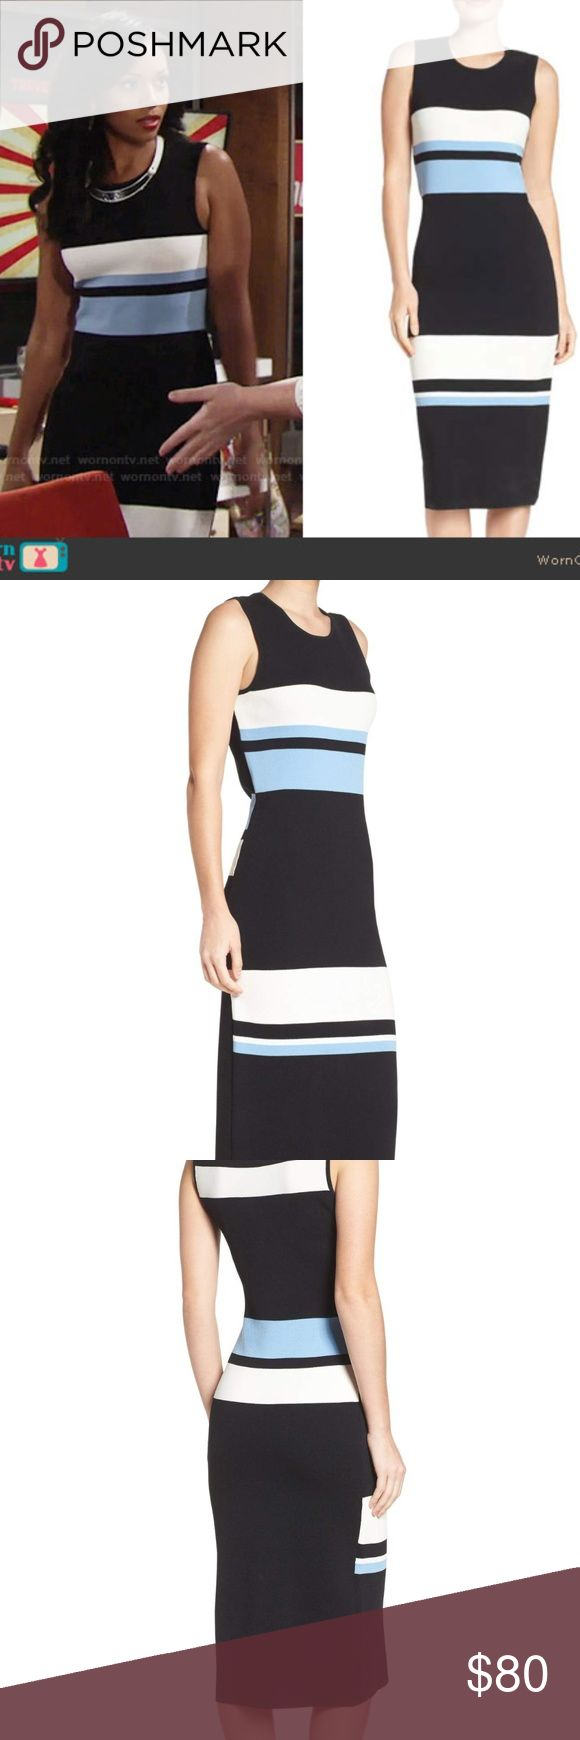 """NEW Vince Camuto blue colorblock tank midi dress Description: You can dress up or down in this figure-skimming midi dress patterned in bold color-block stripes that pop against the black background.   Color(s): blue Brand: VINCE CAMUTO Style Name: Vince Camuto Color Block Midi Dress  Style Number: 5318808 From Nordstrom Retail Price: $148  Approx measurements: Armpit to armpit: 21"""" Shoulder width: 15"""" Length (shoulder to hem): 46""""  Materials: 65% rayon, 35% nylon Dry clean or machine wash…"""